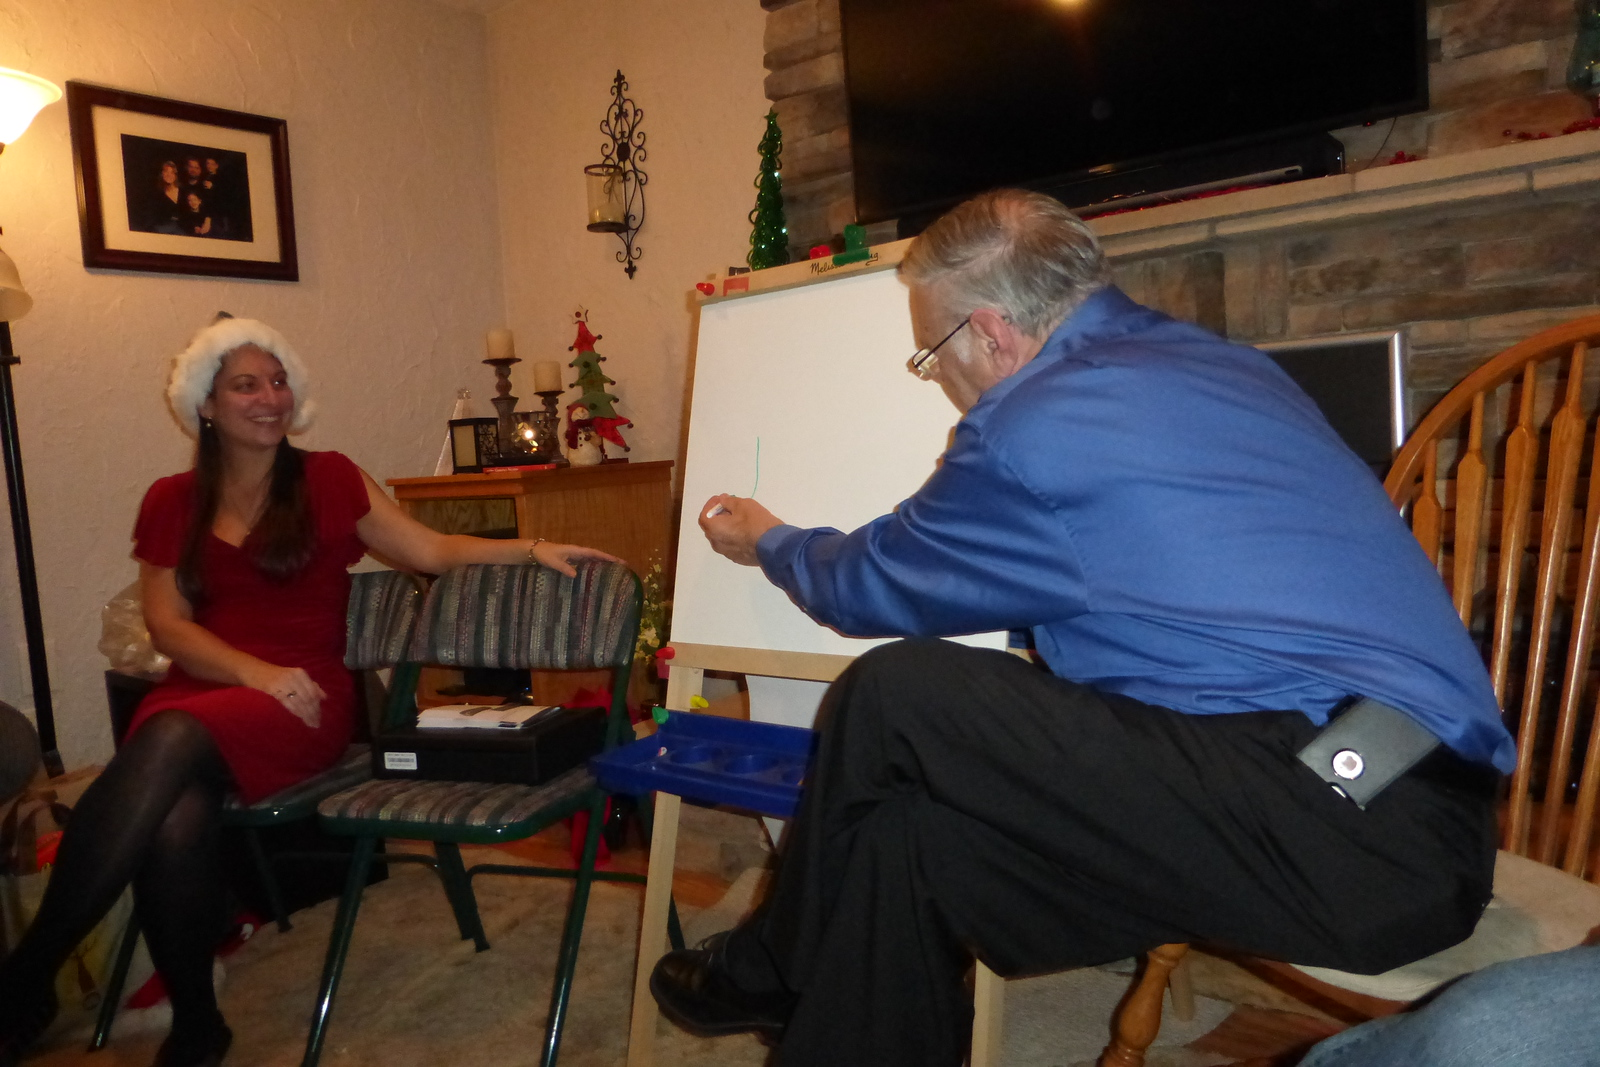 Bob drawing for the Pictionary game.